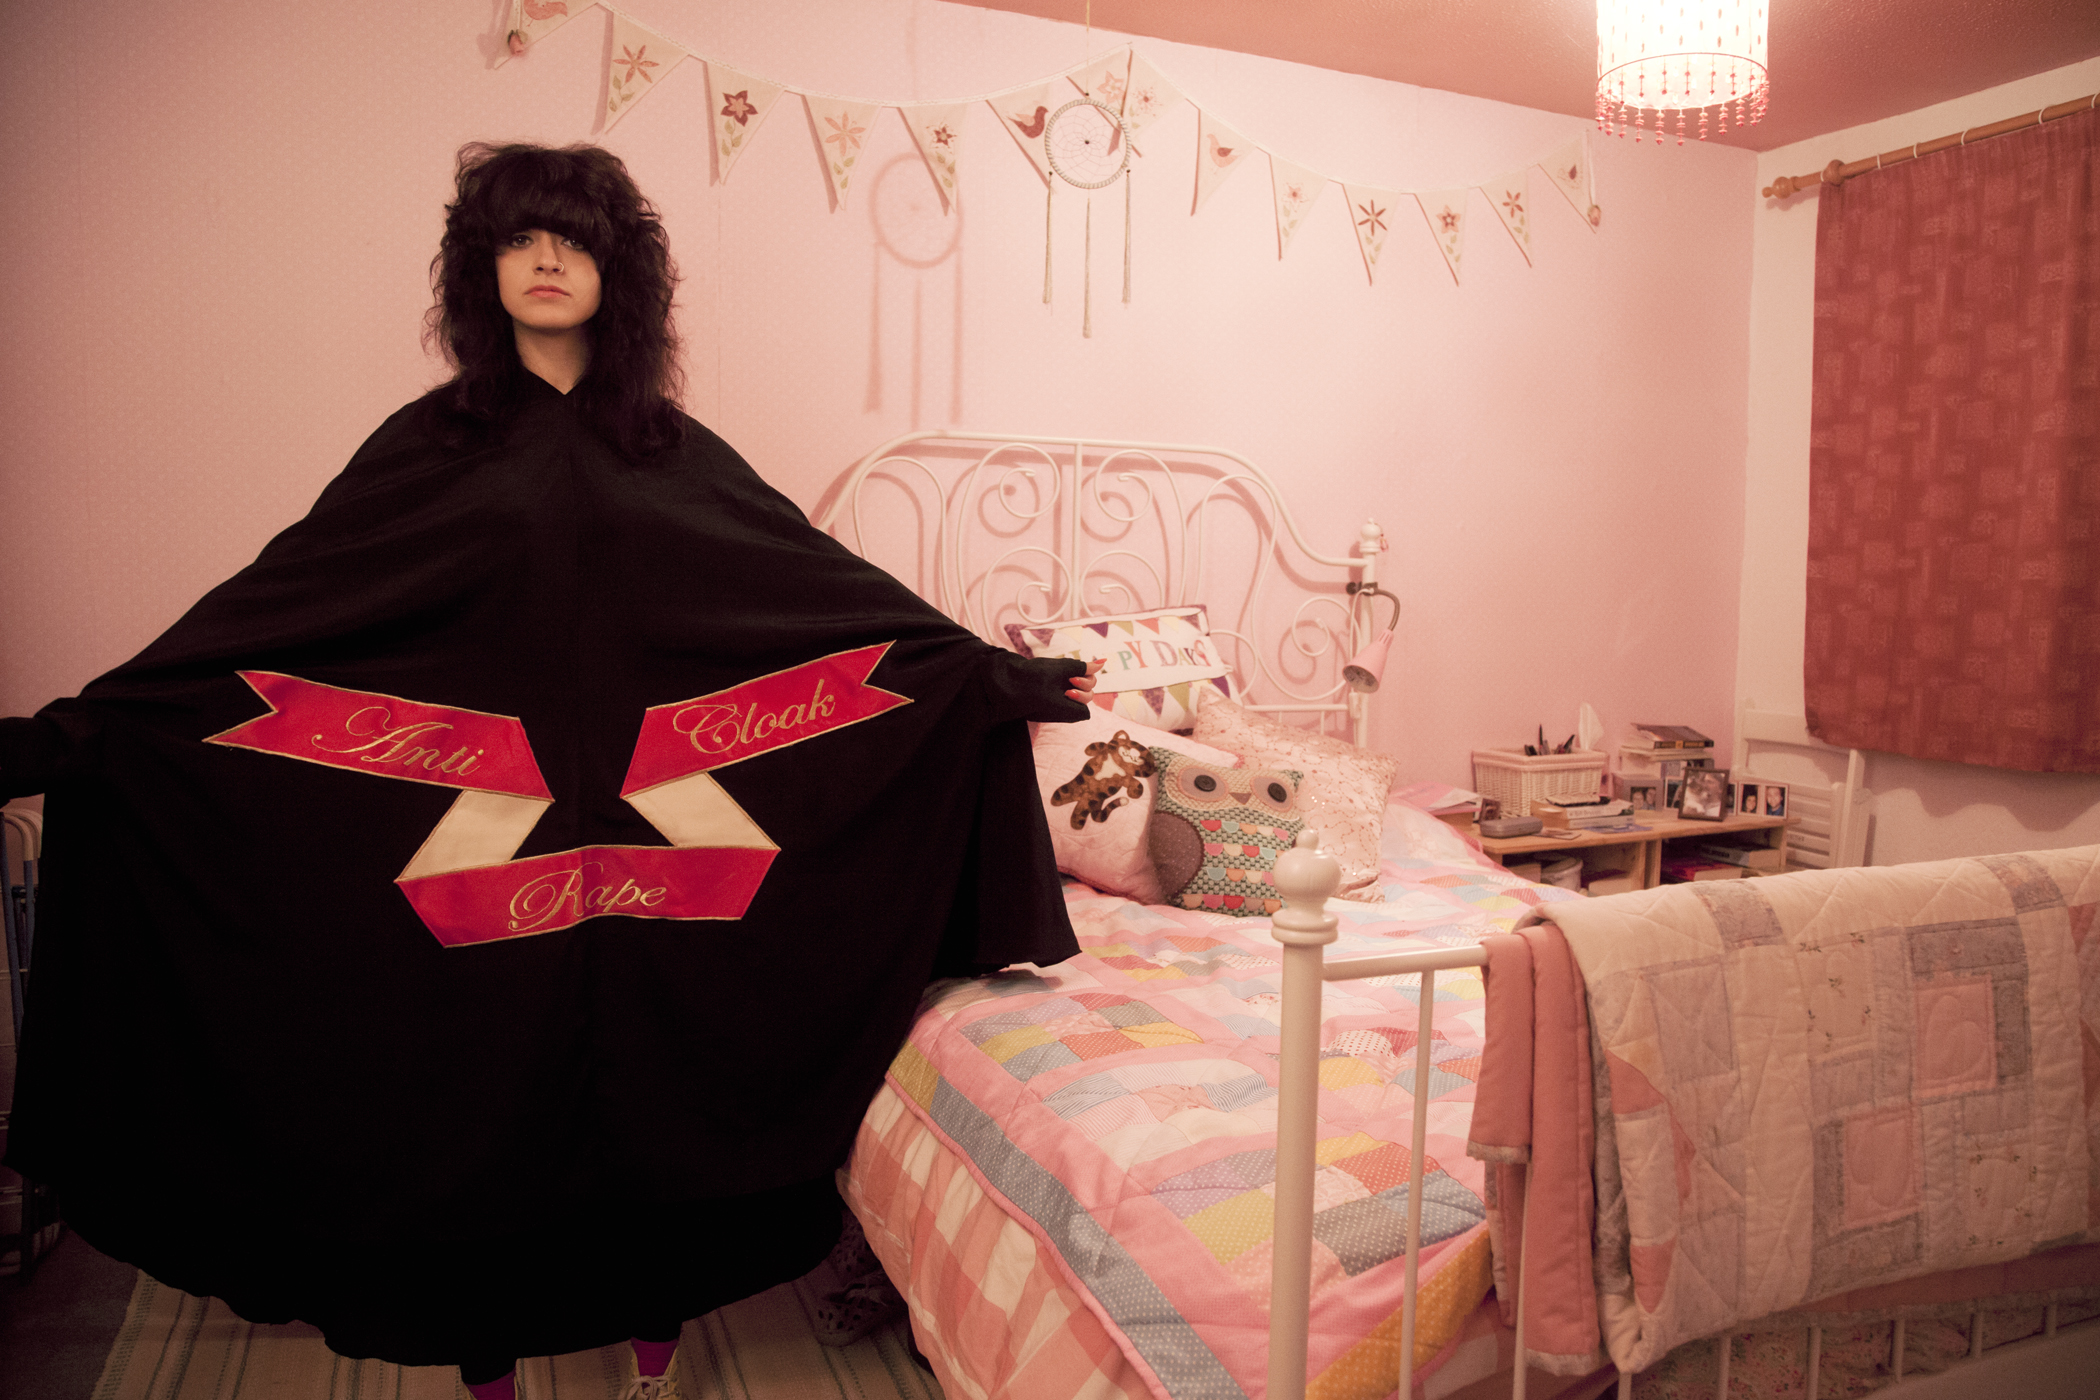 """Sarah Maple, Bedroom Cloak, 2015. C-type matt photograph, 15.75 x 23.5 inches. Maple spreads her arms wide to show the text of her """"Anti-Rape Cloak"""" as she stands in a pink bedroom. Photo courtesy of the Ukrainian Institute of Modern Art."""